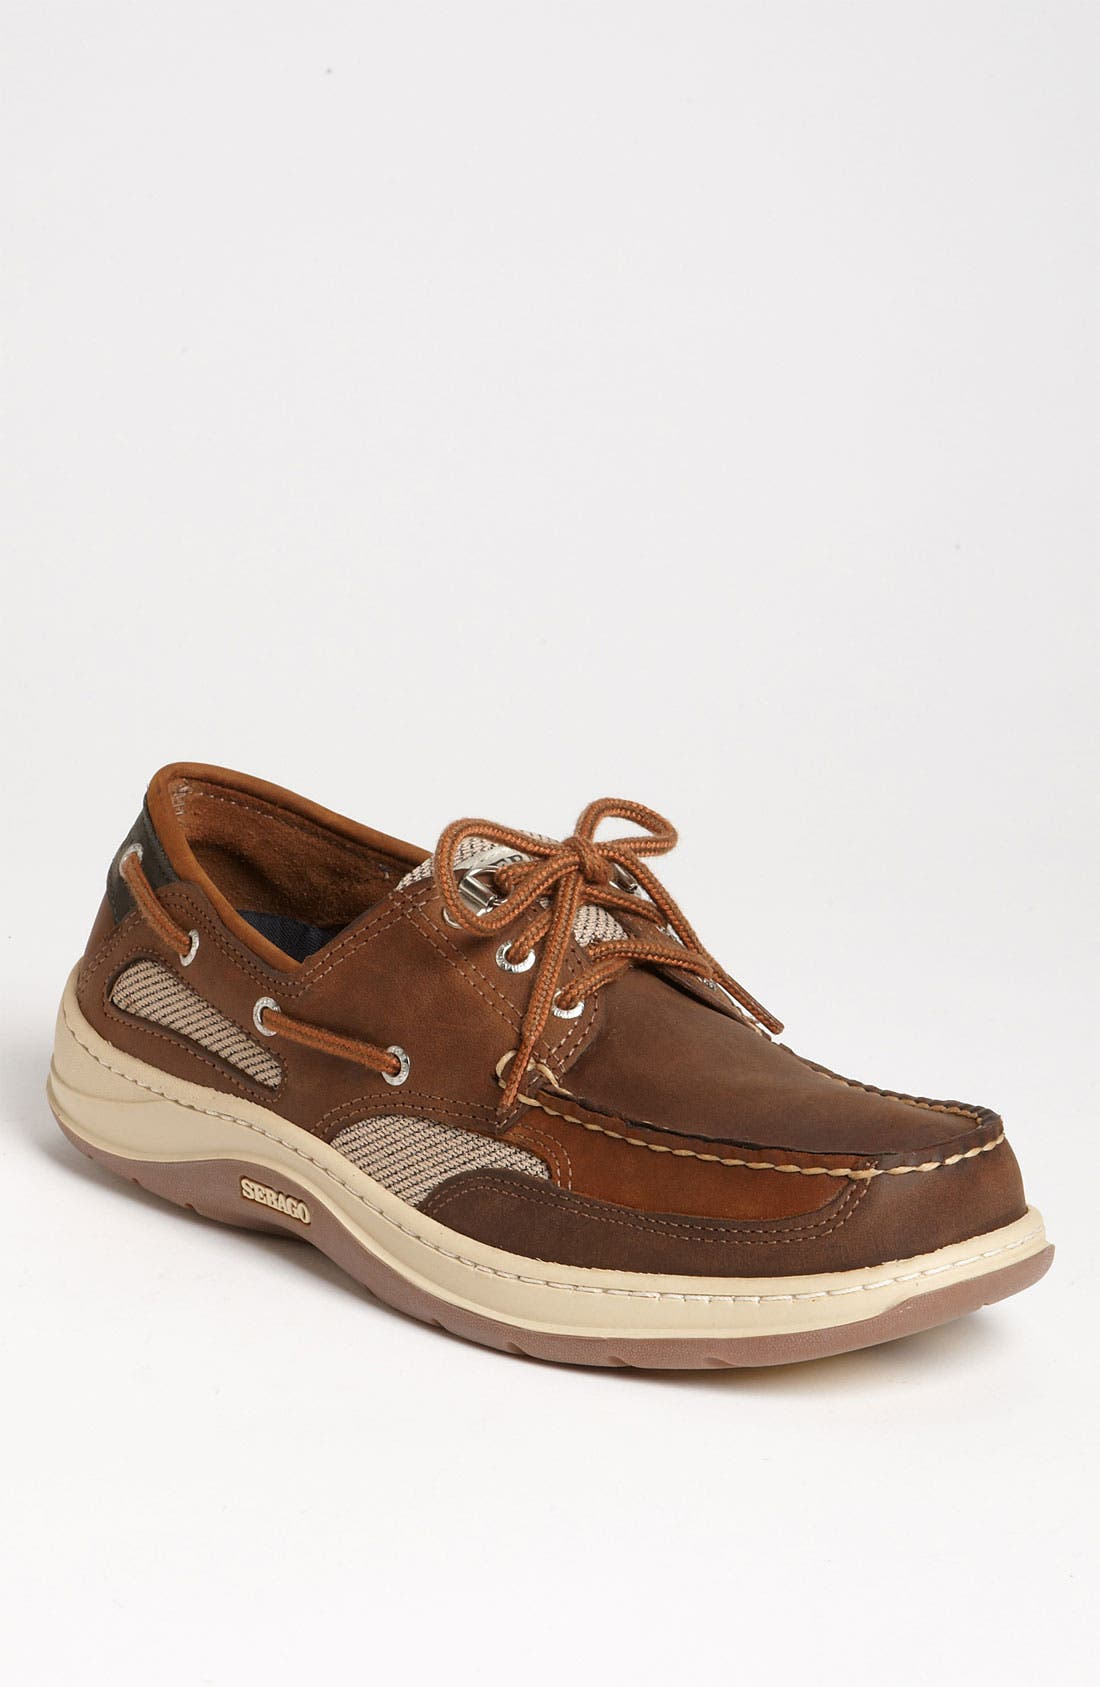 Alternate Image 1 Selected - Sebago 'Clovehitch II' Boat Shoe